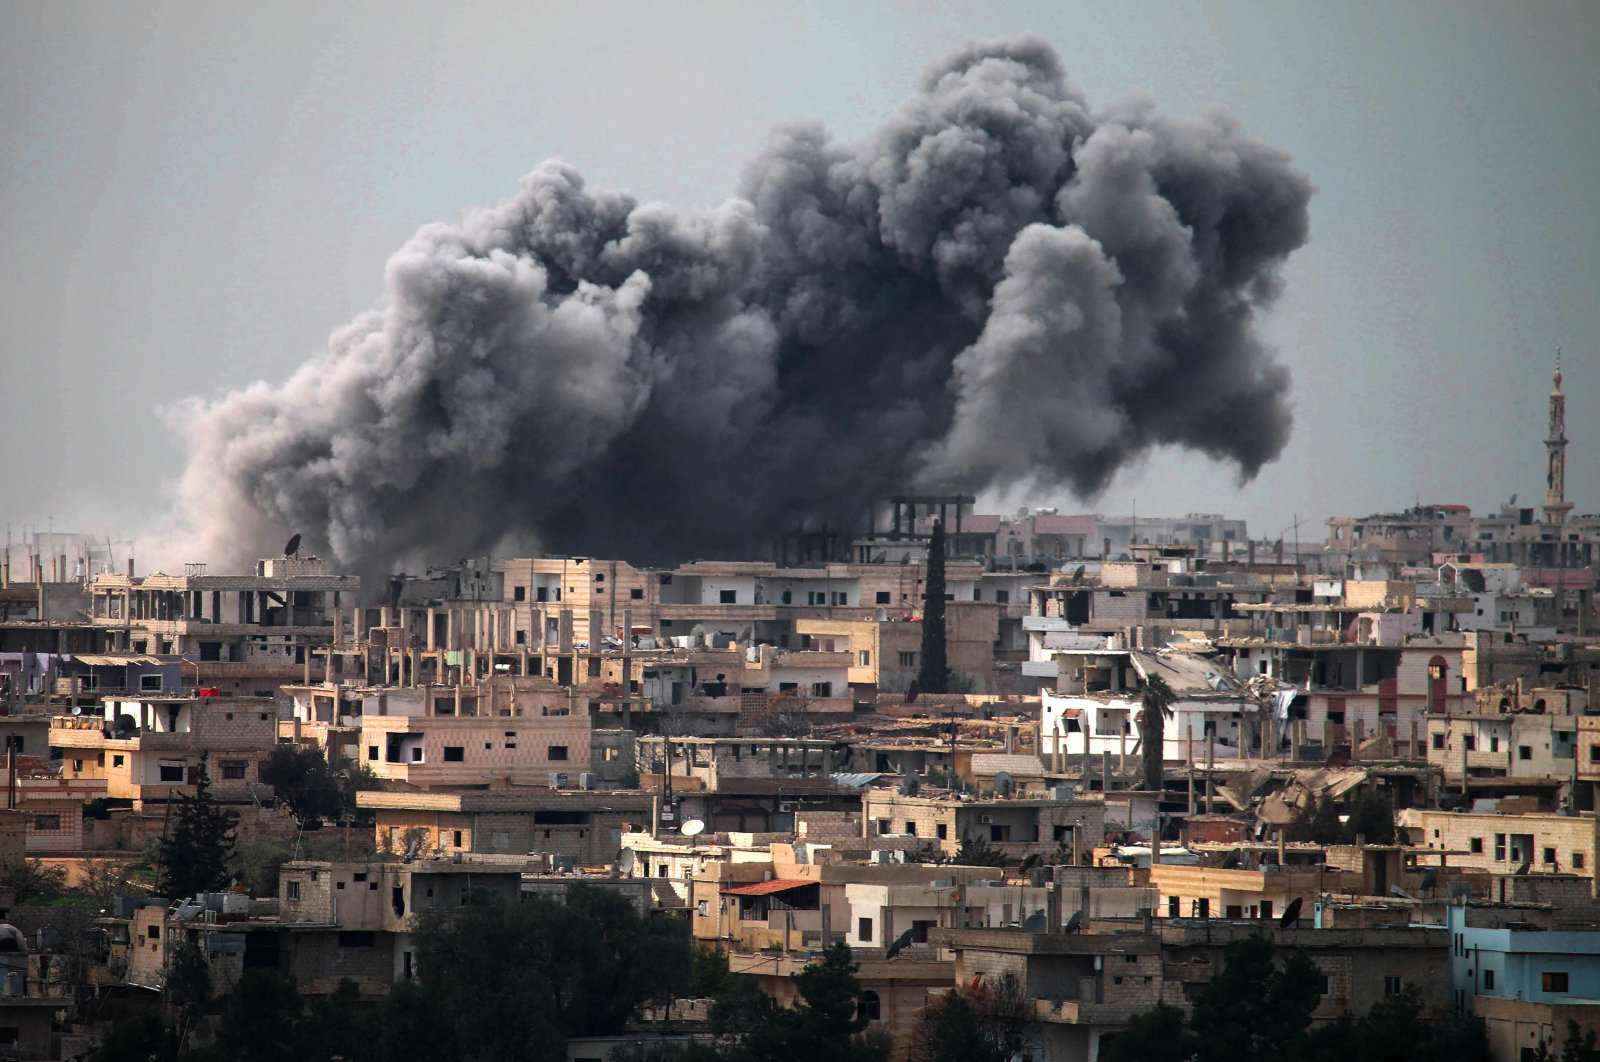 Smoke billows following reported airstrikes on an opposition-held area in the southern city of Daraa, Syria, March 16, 2017. (AFP Photo)